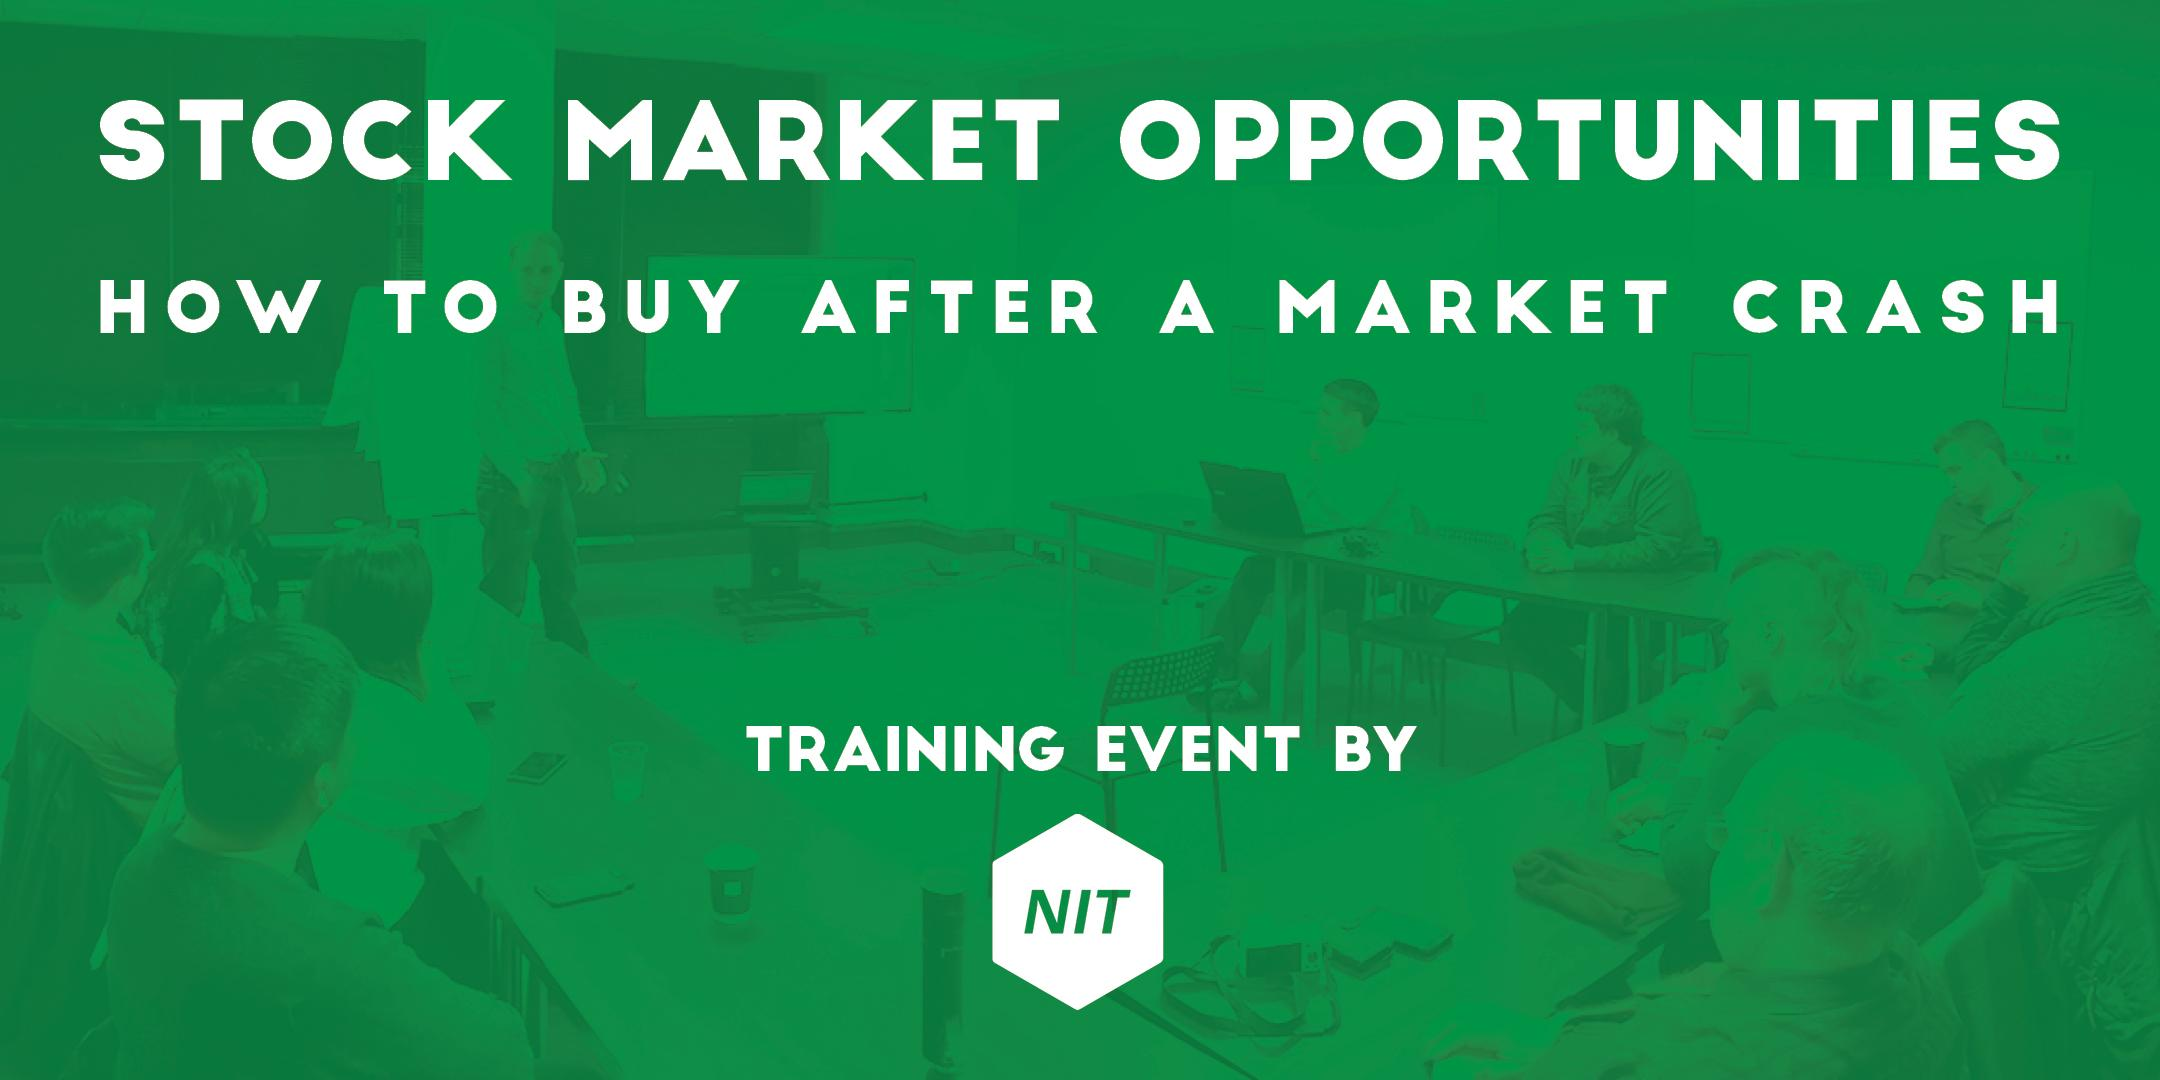 Stock Market Opportunities - How to buy after a market crash